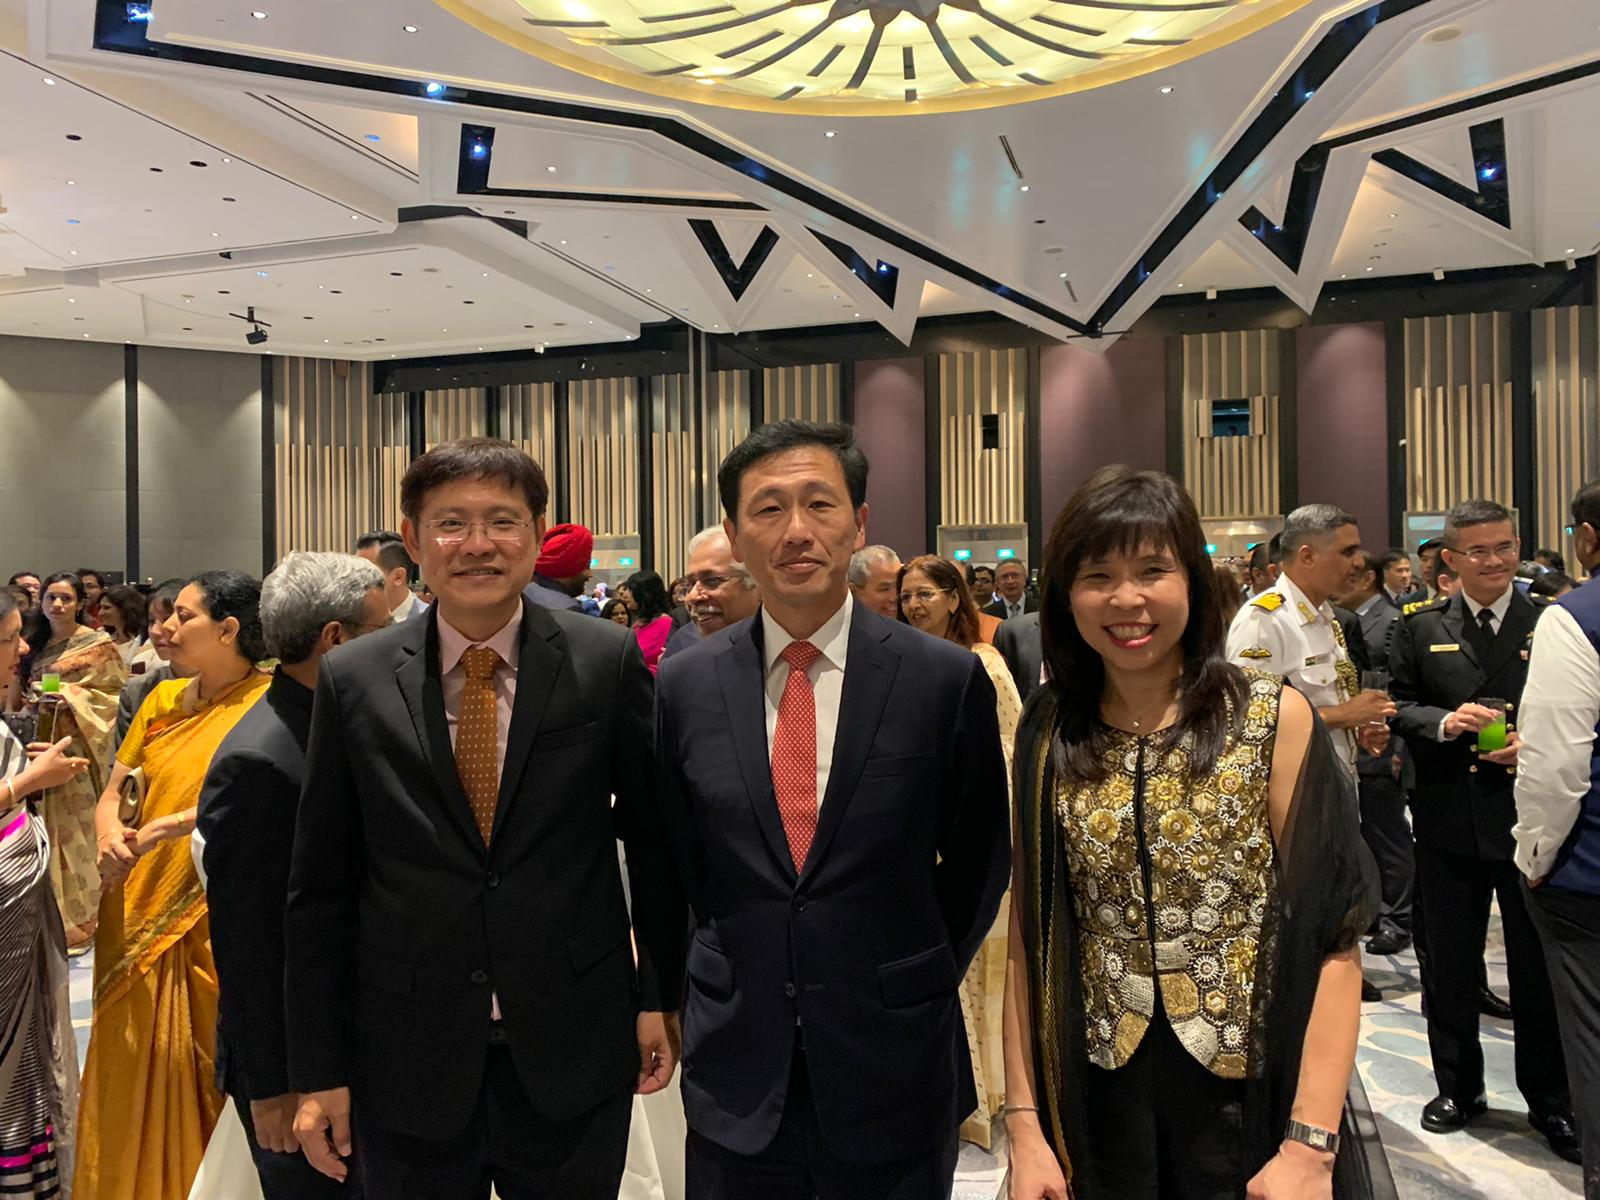 Mr Ong Ye Kung, Minister for Education, Members of Parliament Ms Jessica Tan, Mr Gan Thiam Poh, Rear-Admiral Lew Chuen Hong, Chief of Navy, friends of India, Indian diaspora, were among the more than 1500 distinguished guests at Swissotel the Stamford, Singapore.  Photo: Connected to India